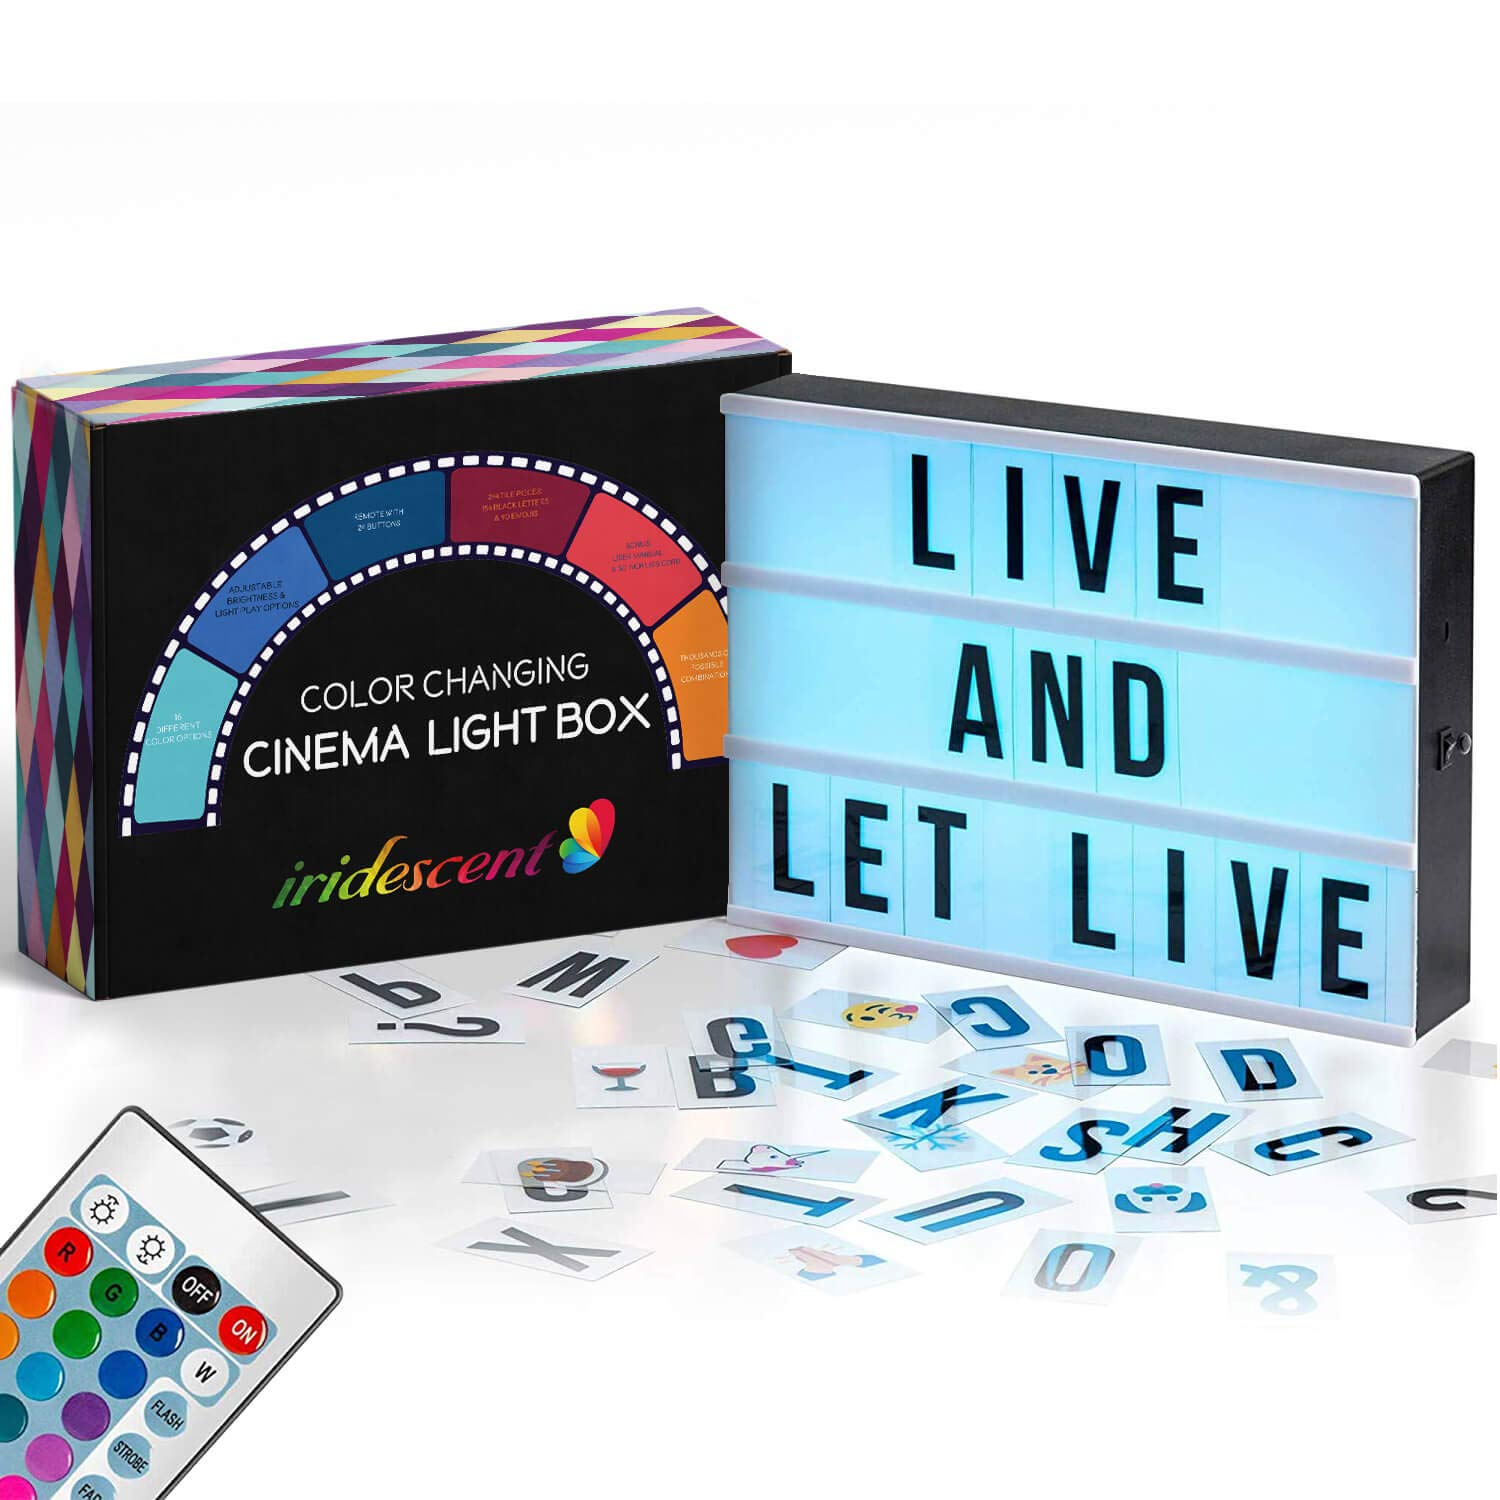 Color Changing Cinema Light Box with Letters - 228 Total Letters, Numbers & Emojis | 16 Colors Remote-controlled PREMIUM Cinematic Marquee Sign Light Box | NEW for 2019! LED Light Up Letter Box Sign